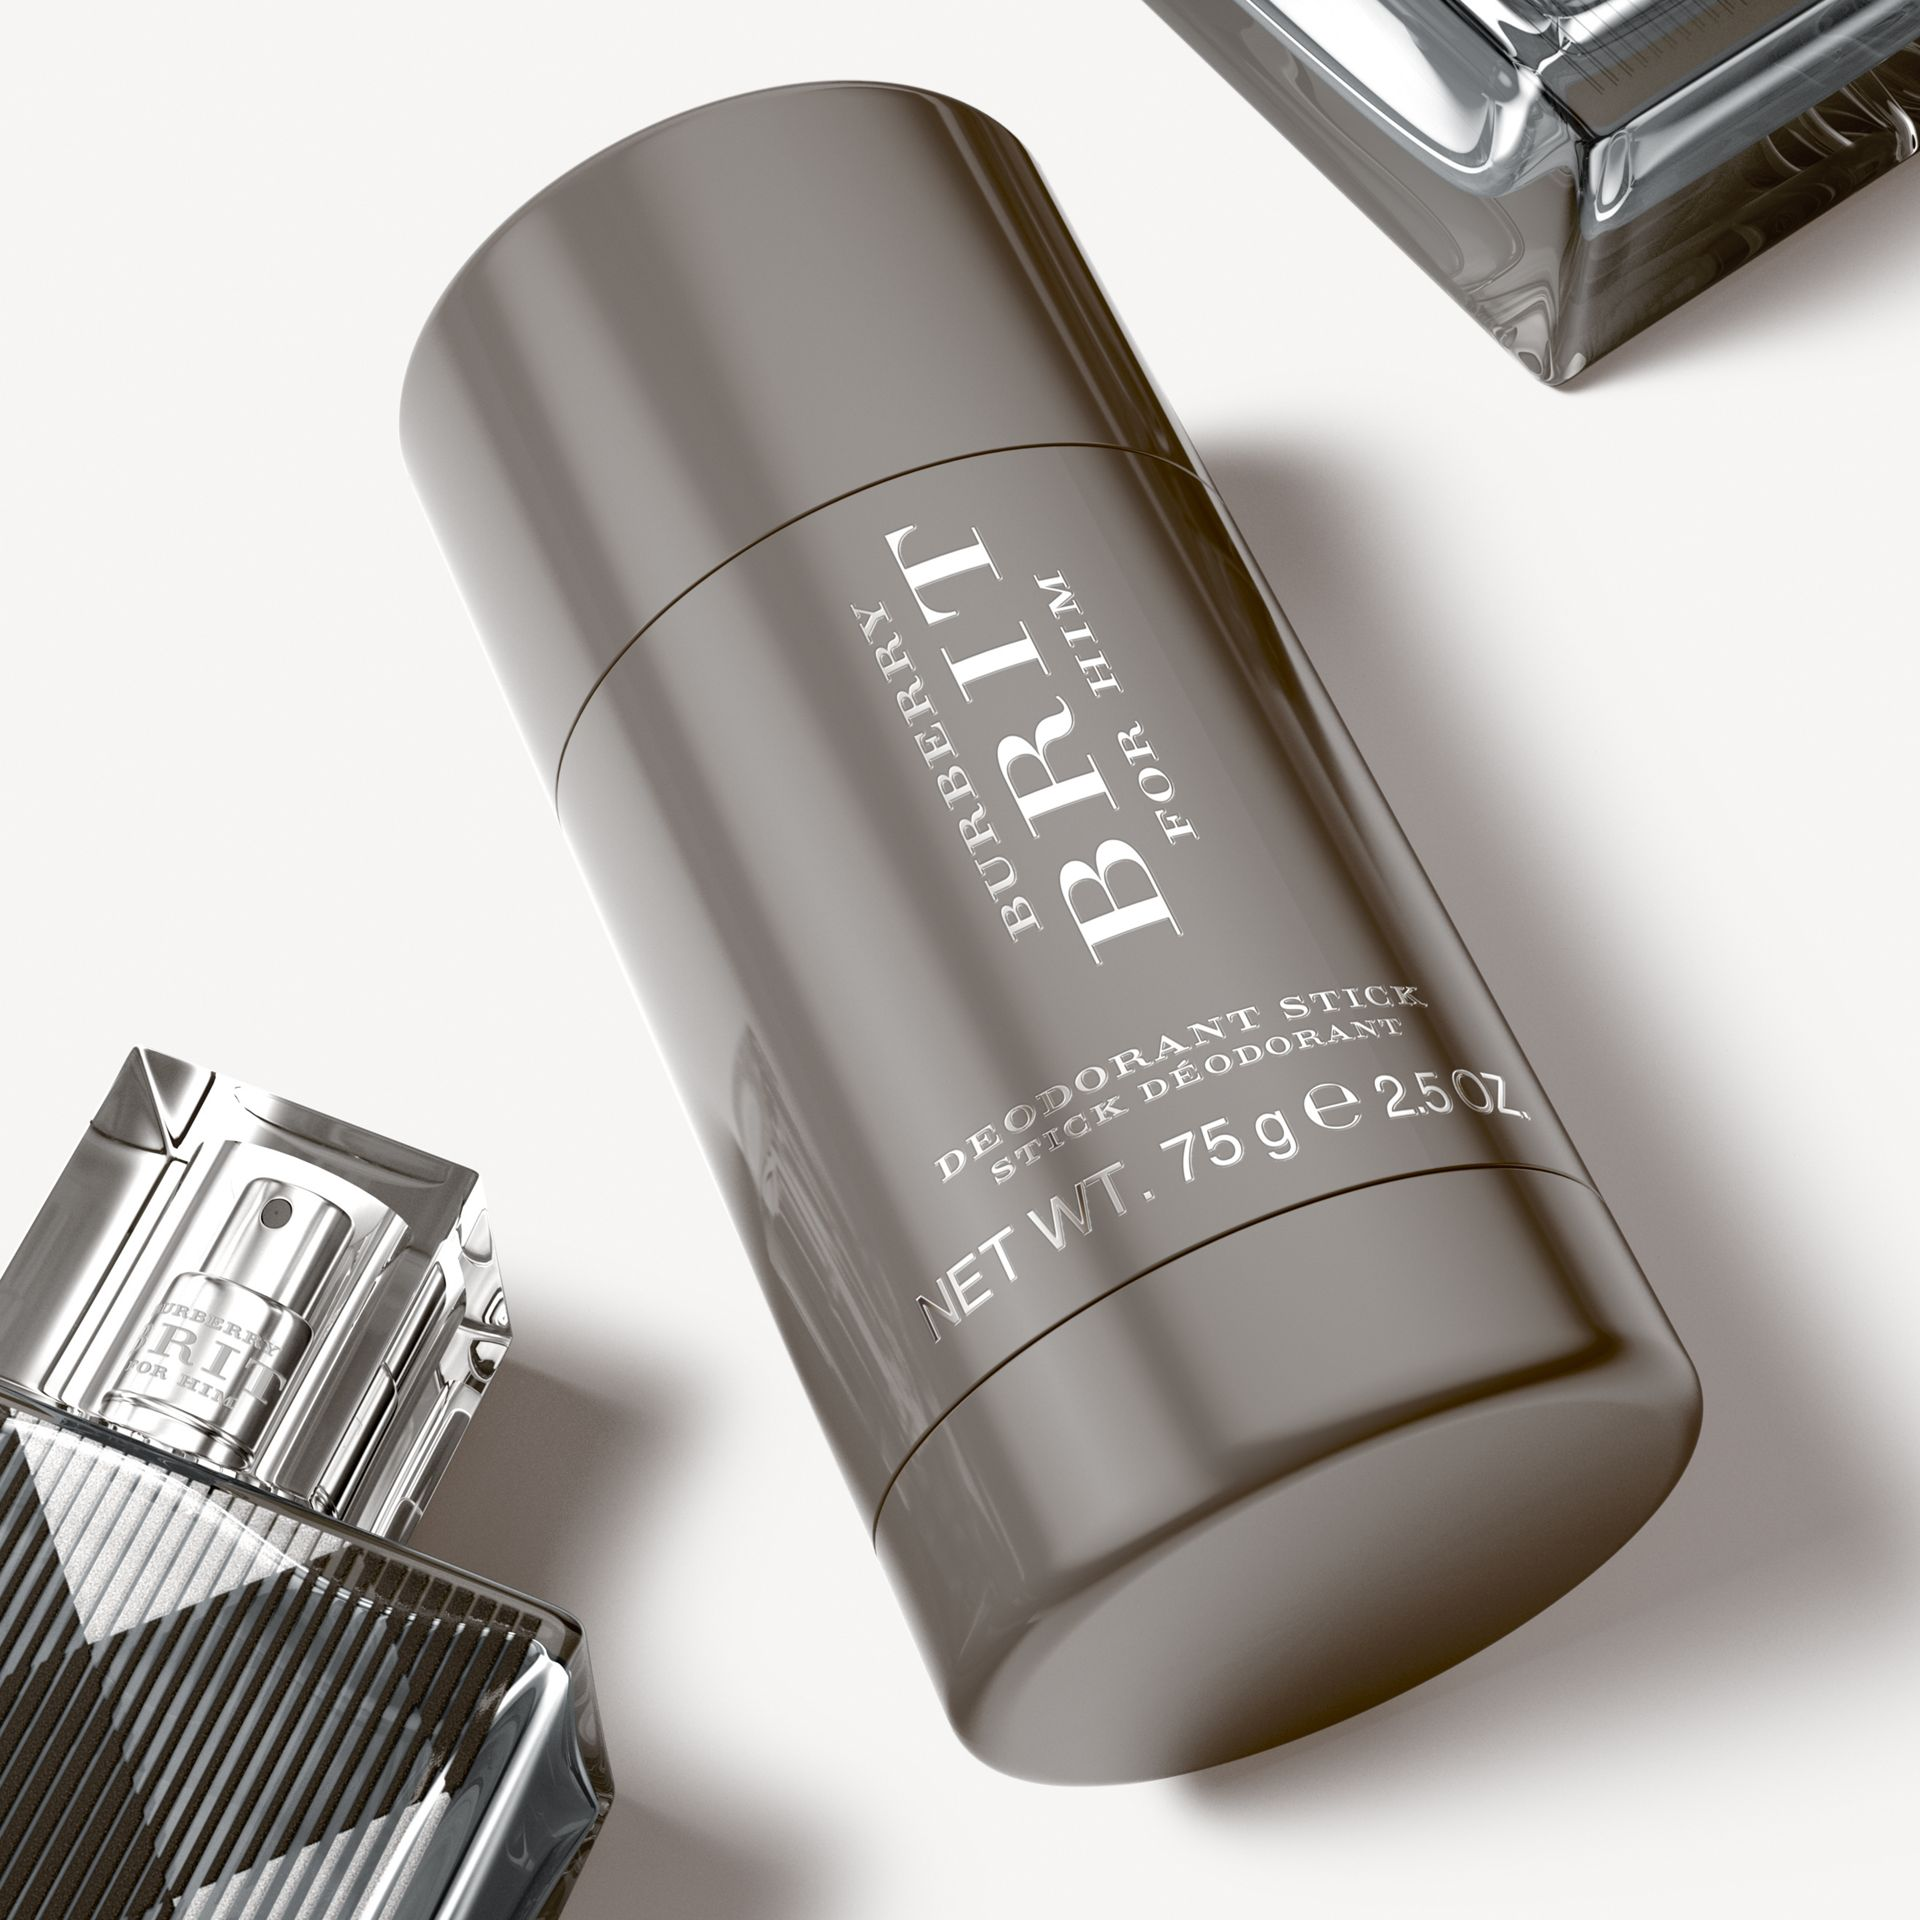 Burberry Brit For Him 香體膏 75g (75ml) - 男款 | Burberry - 圖庫照片 2